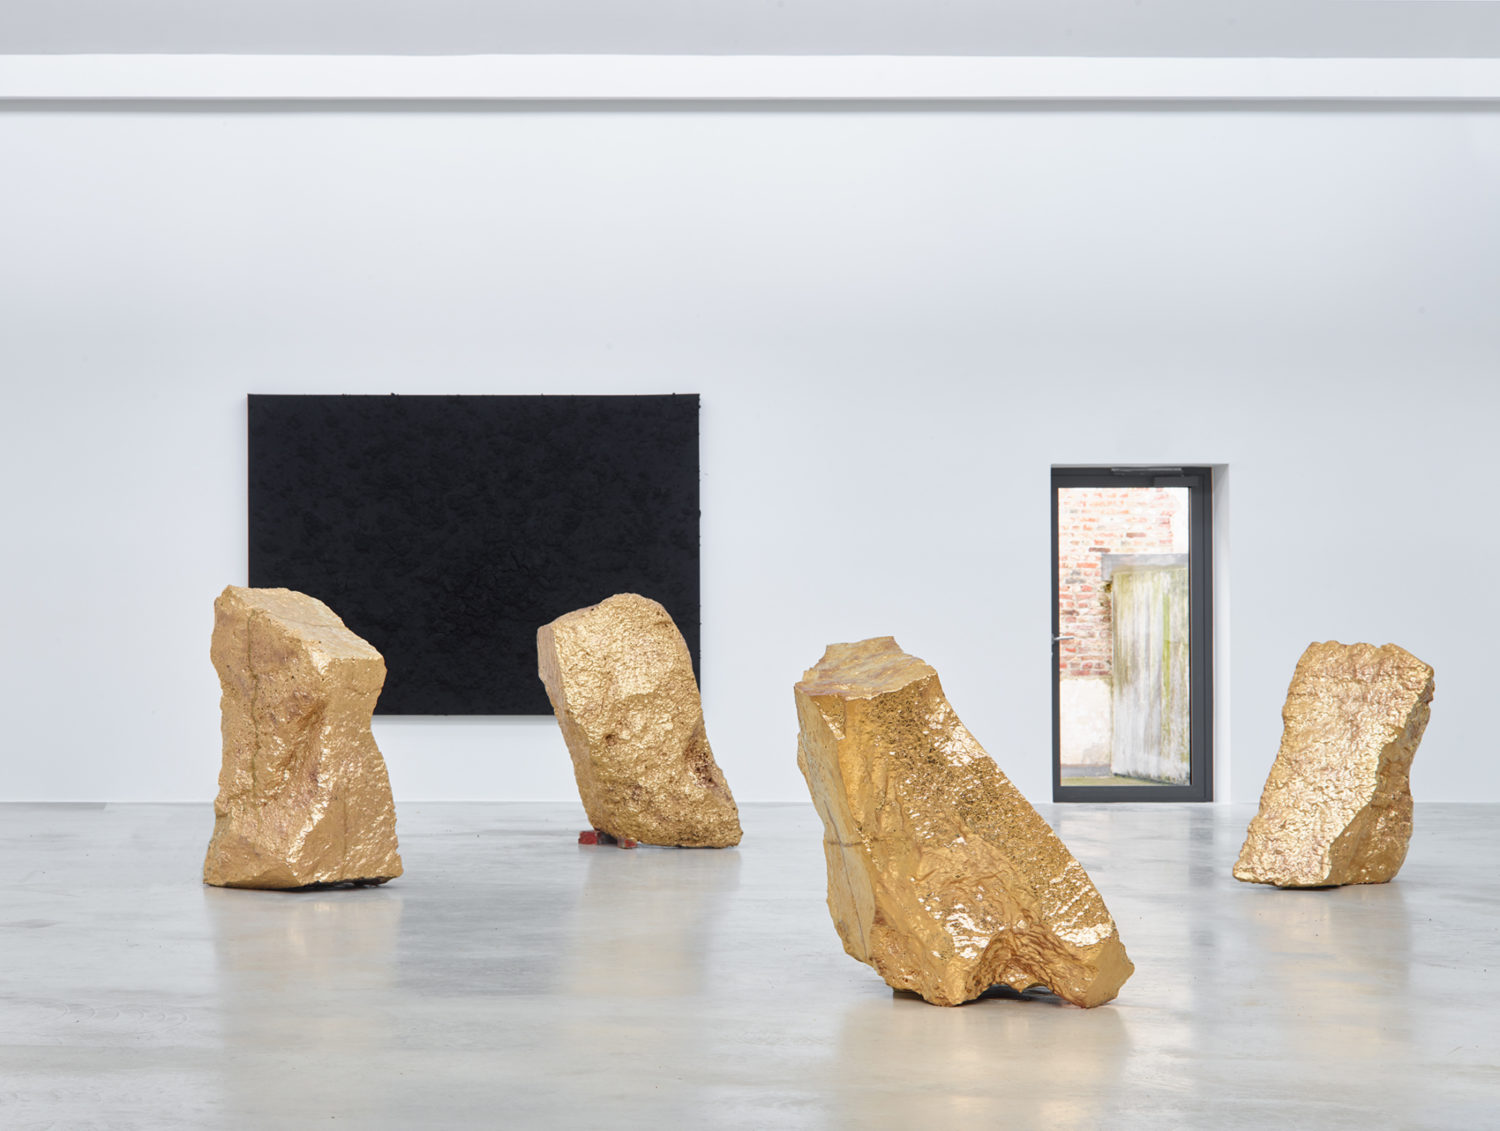 """Installation view of """"Into The Deepest"""" by Bosco Sodi at Axel Vervoordt Gallery"""